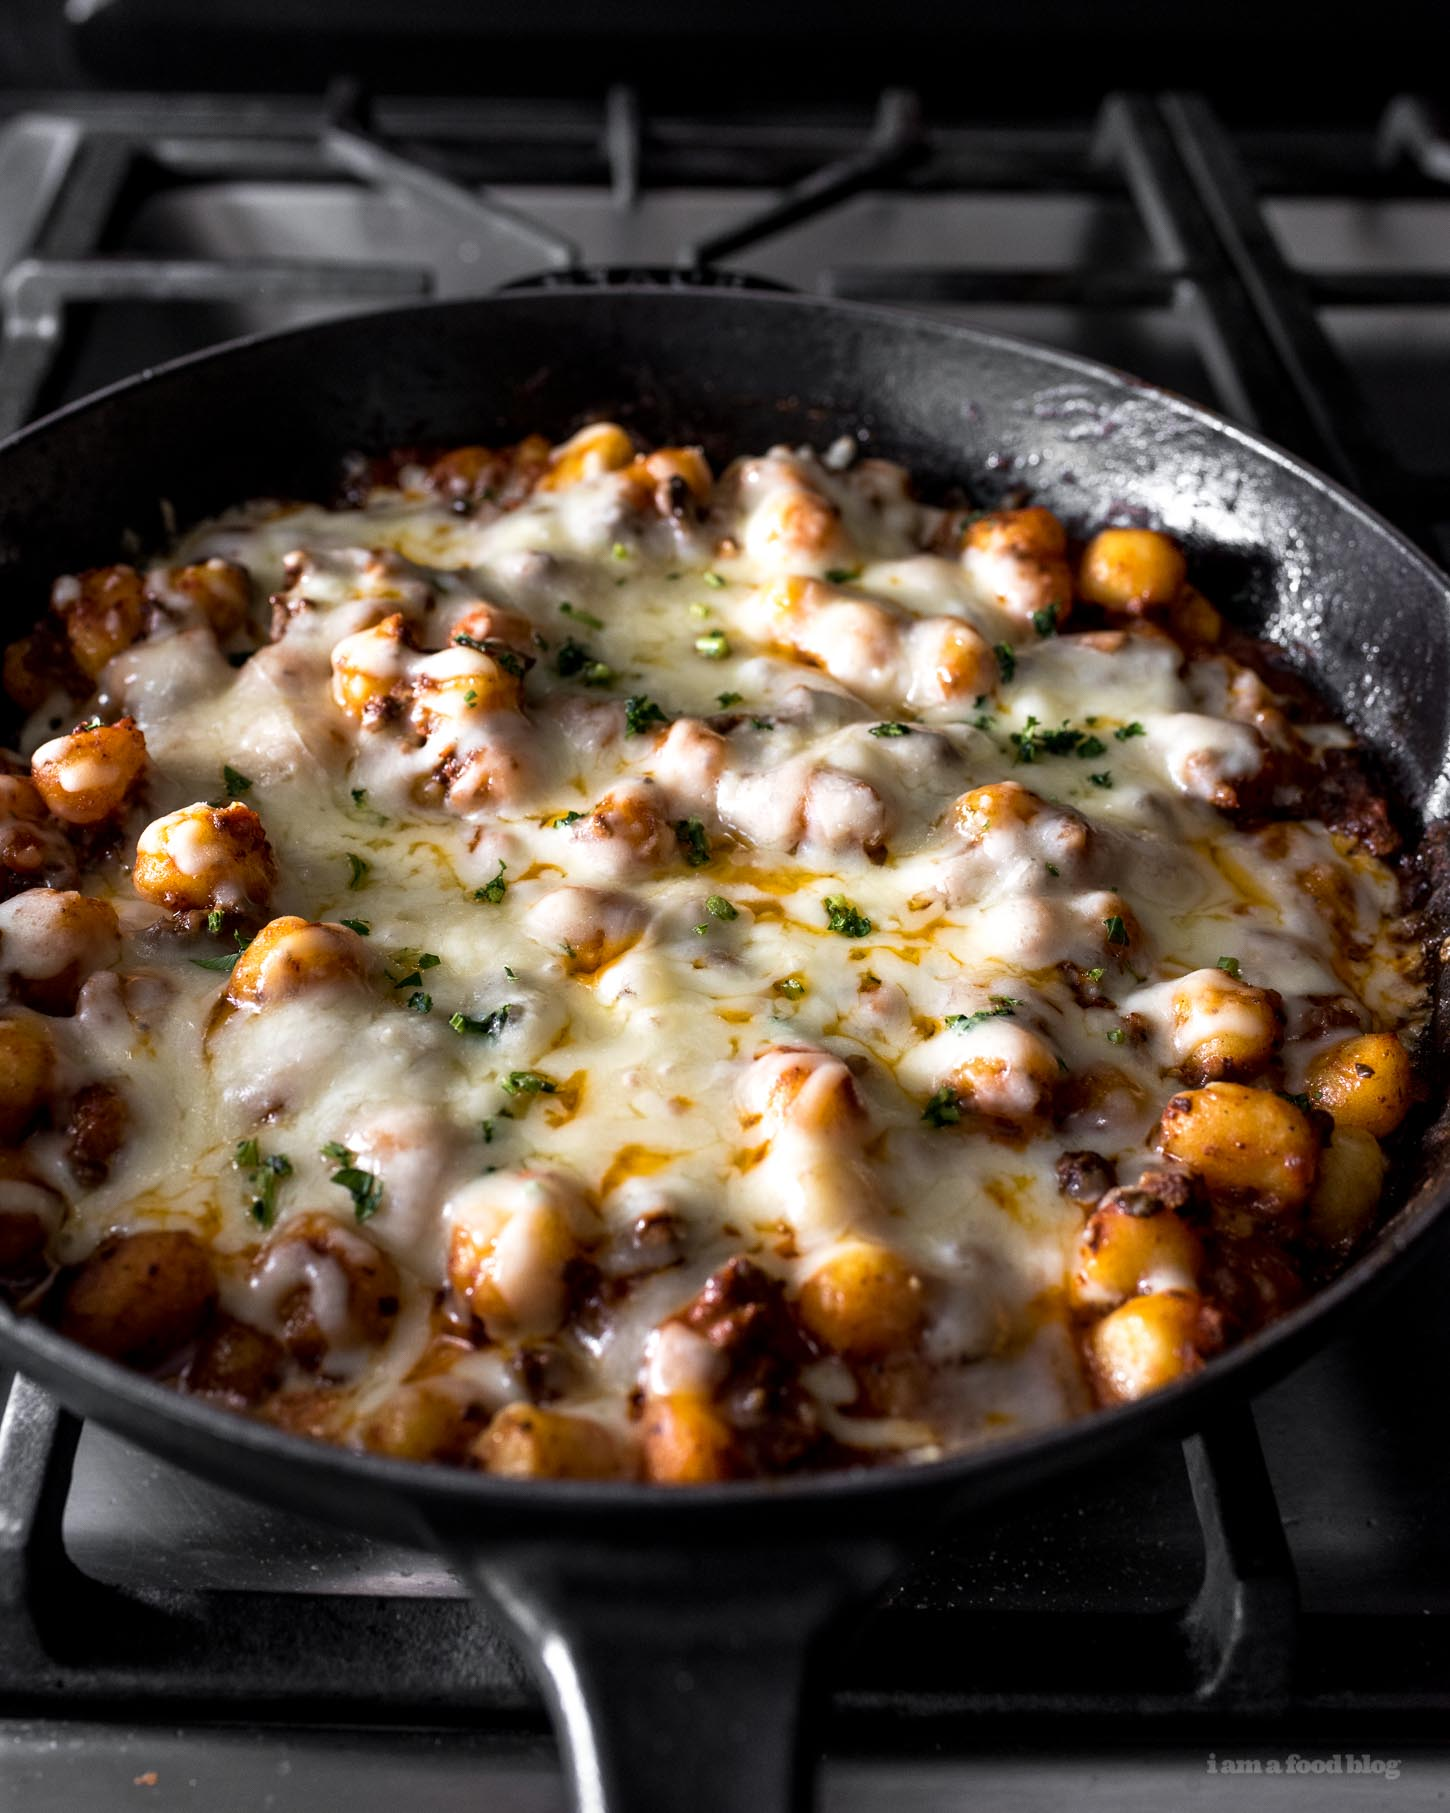 Extra Cheesy Baked Gnocchi Bolognese Recipe | www.iamafoodblog.com